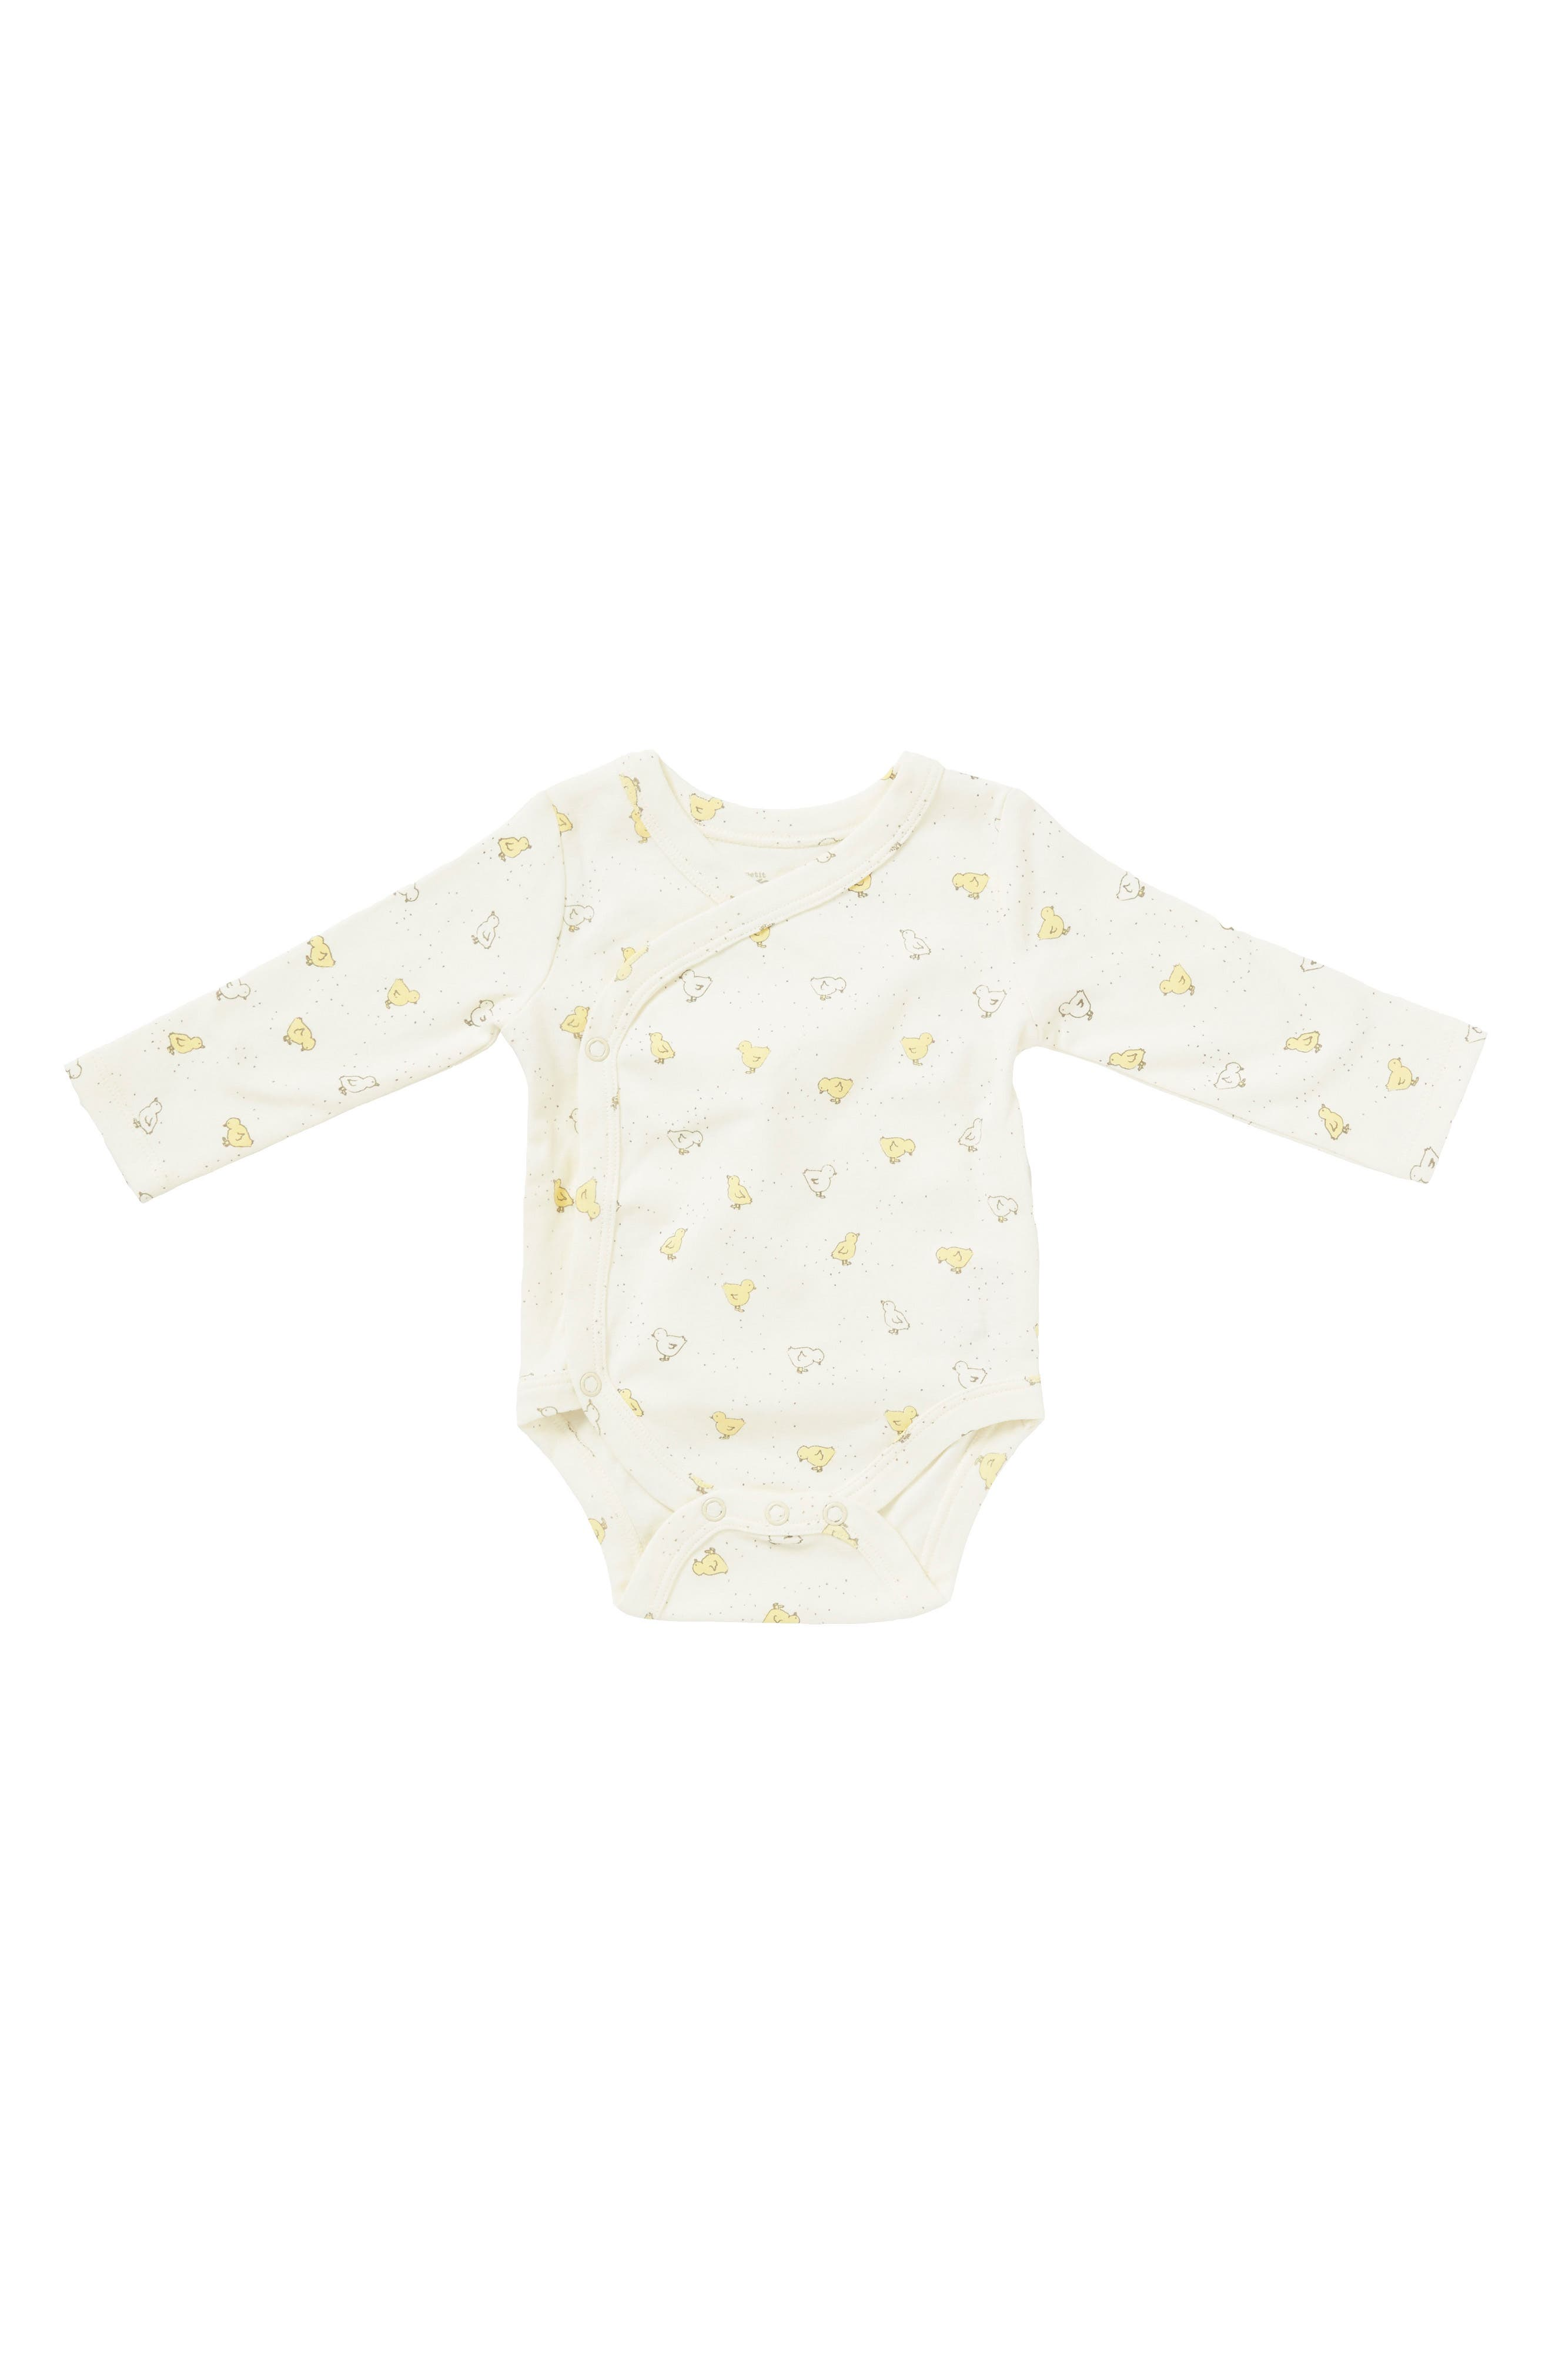 Baby Chick Bodysuit,                         Main,                         color, 900